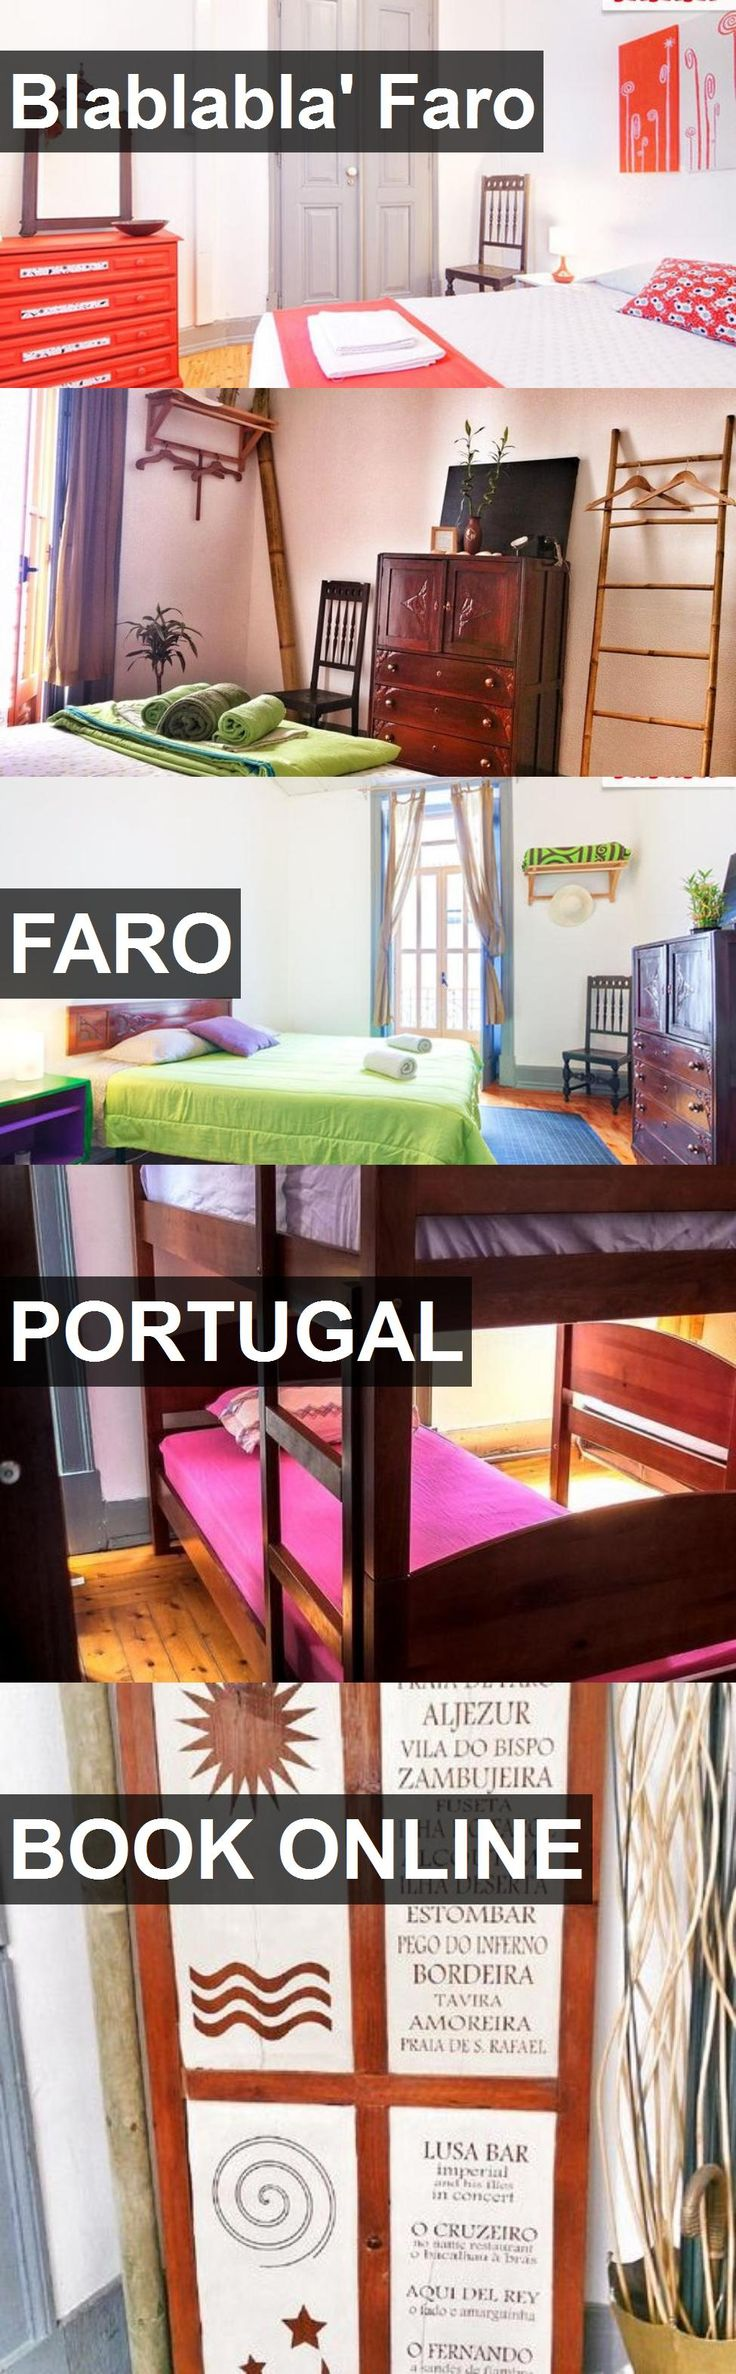 Hotel Blablabla' Faro in FARO, Portugal. For more information, photos, reviews and best prices please follow the link. #Portugal #FARO #Blablabla'Faro #hotel #travel #vacation